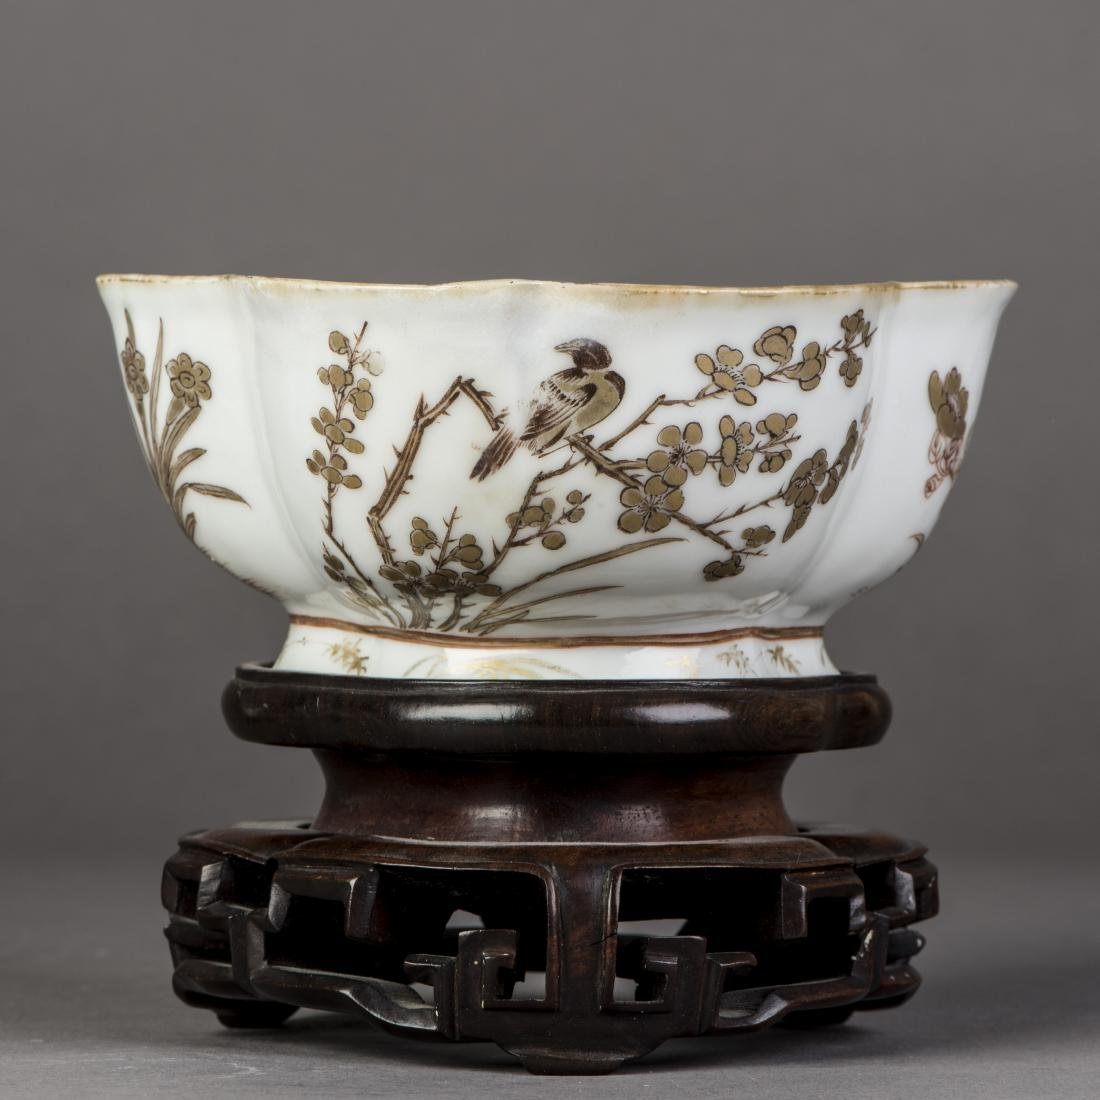 A 'BIRD AND FLOWER' PORCELAIN BOWL